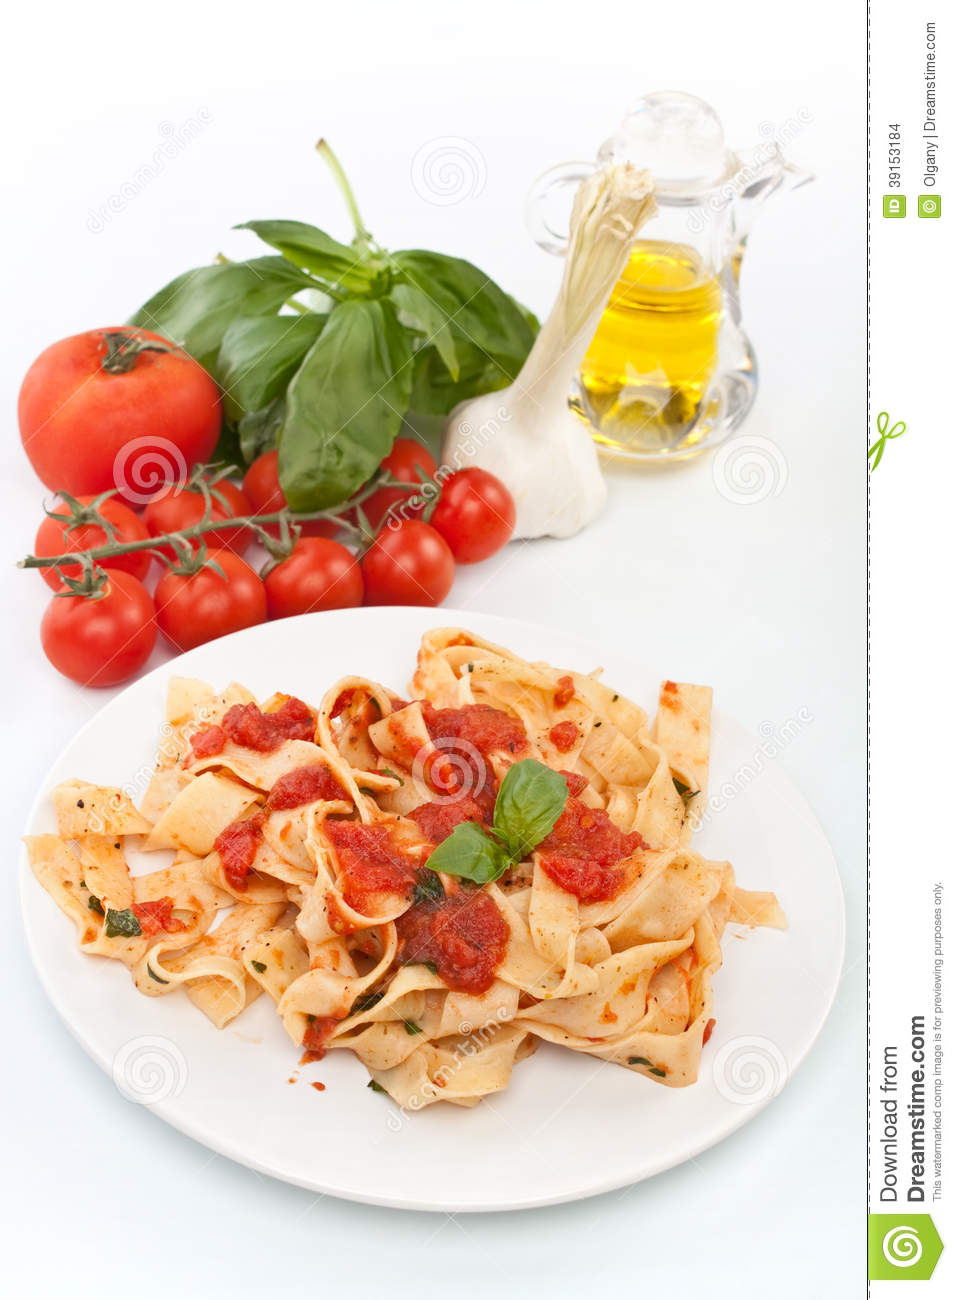 Homemade Pasta with Tomato Sauce